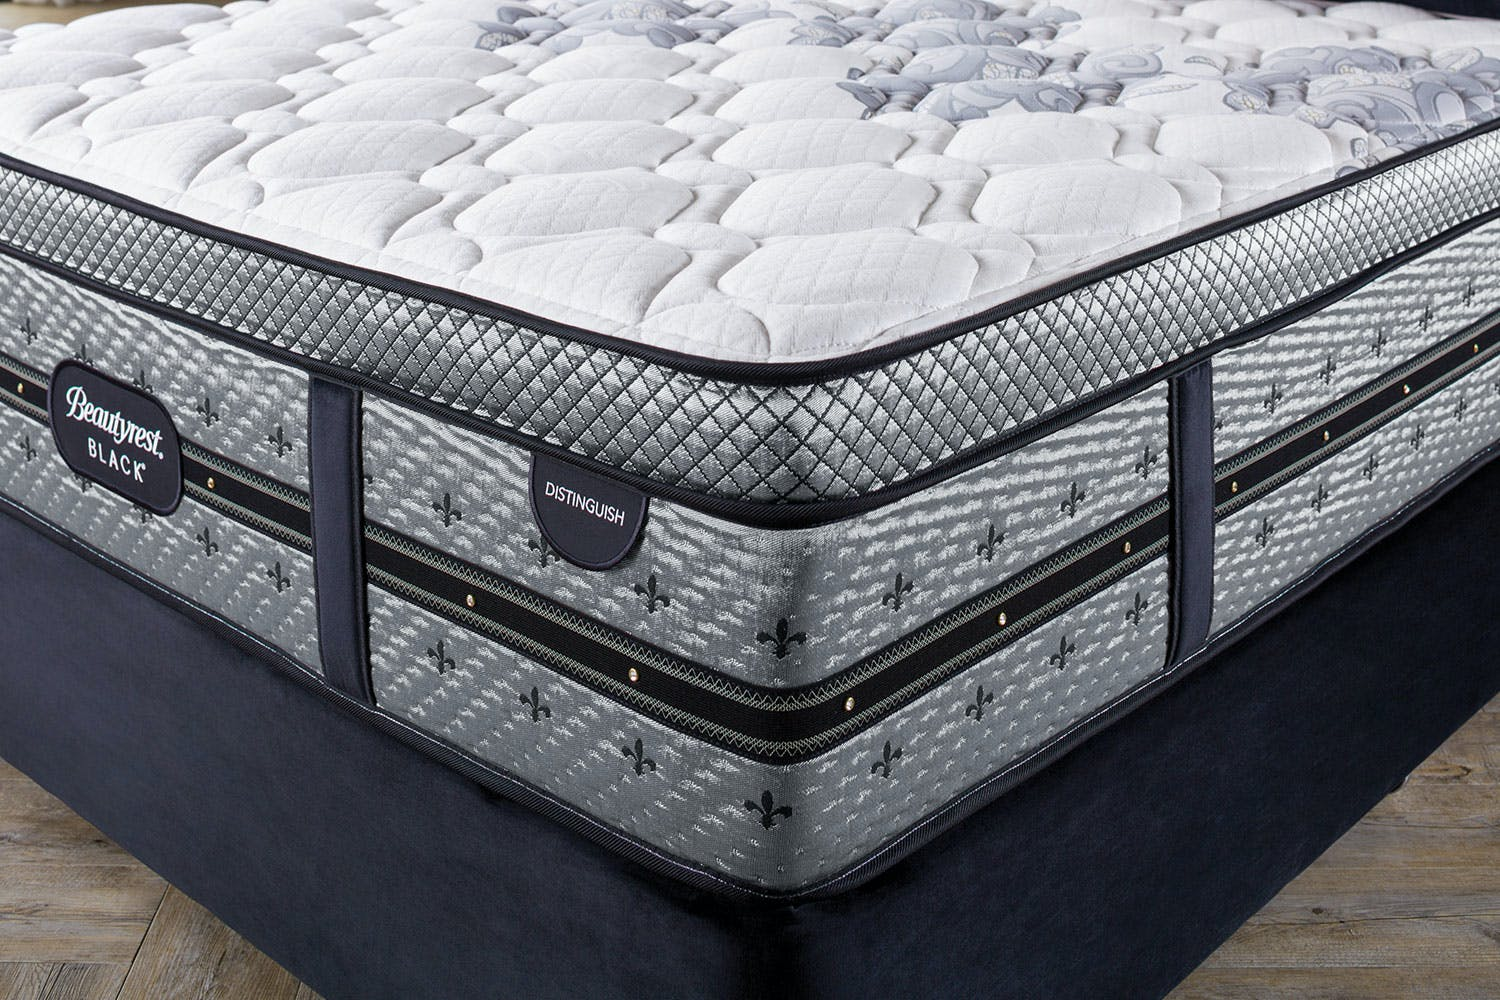 Distinguish Soft Super King Bed by Beautyrest Black